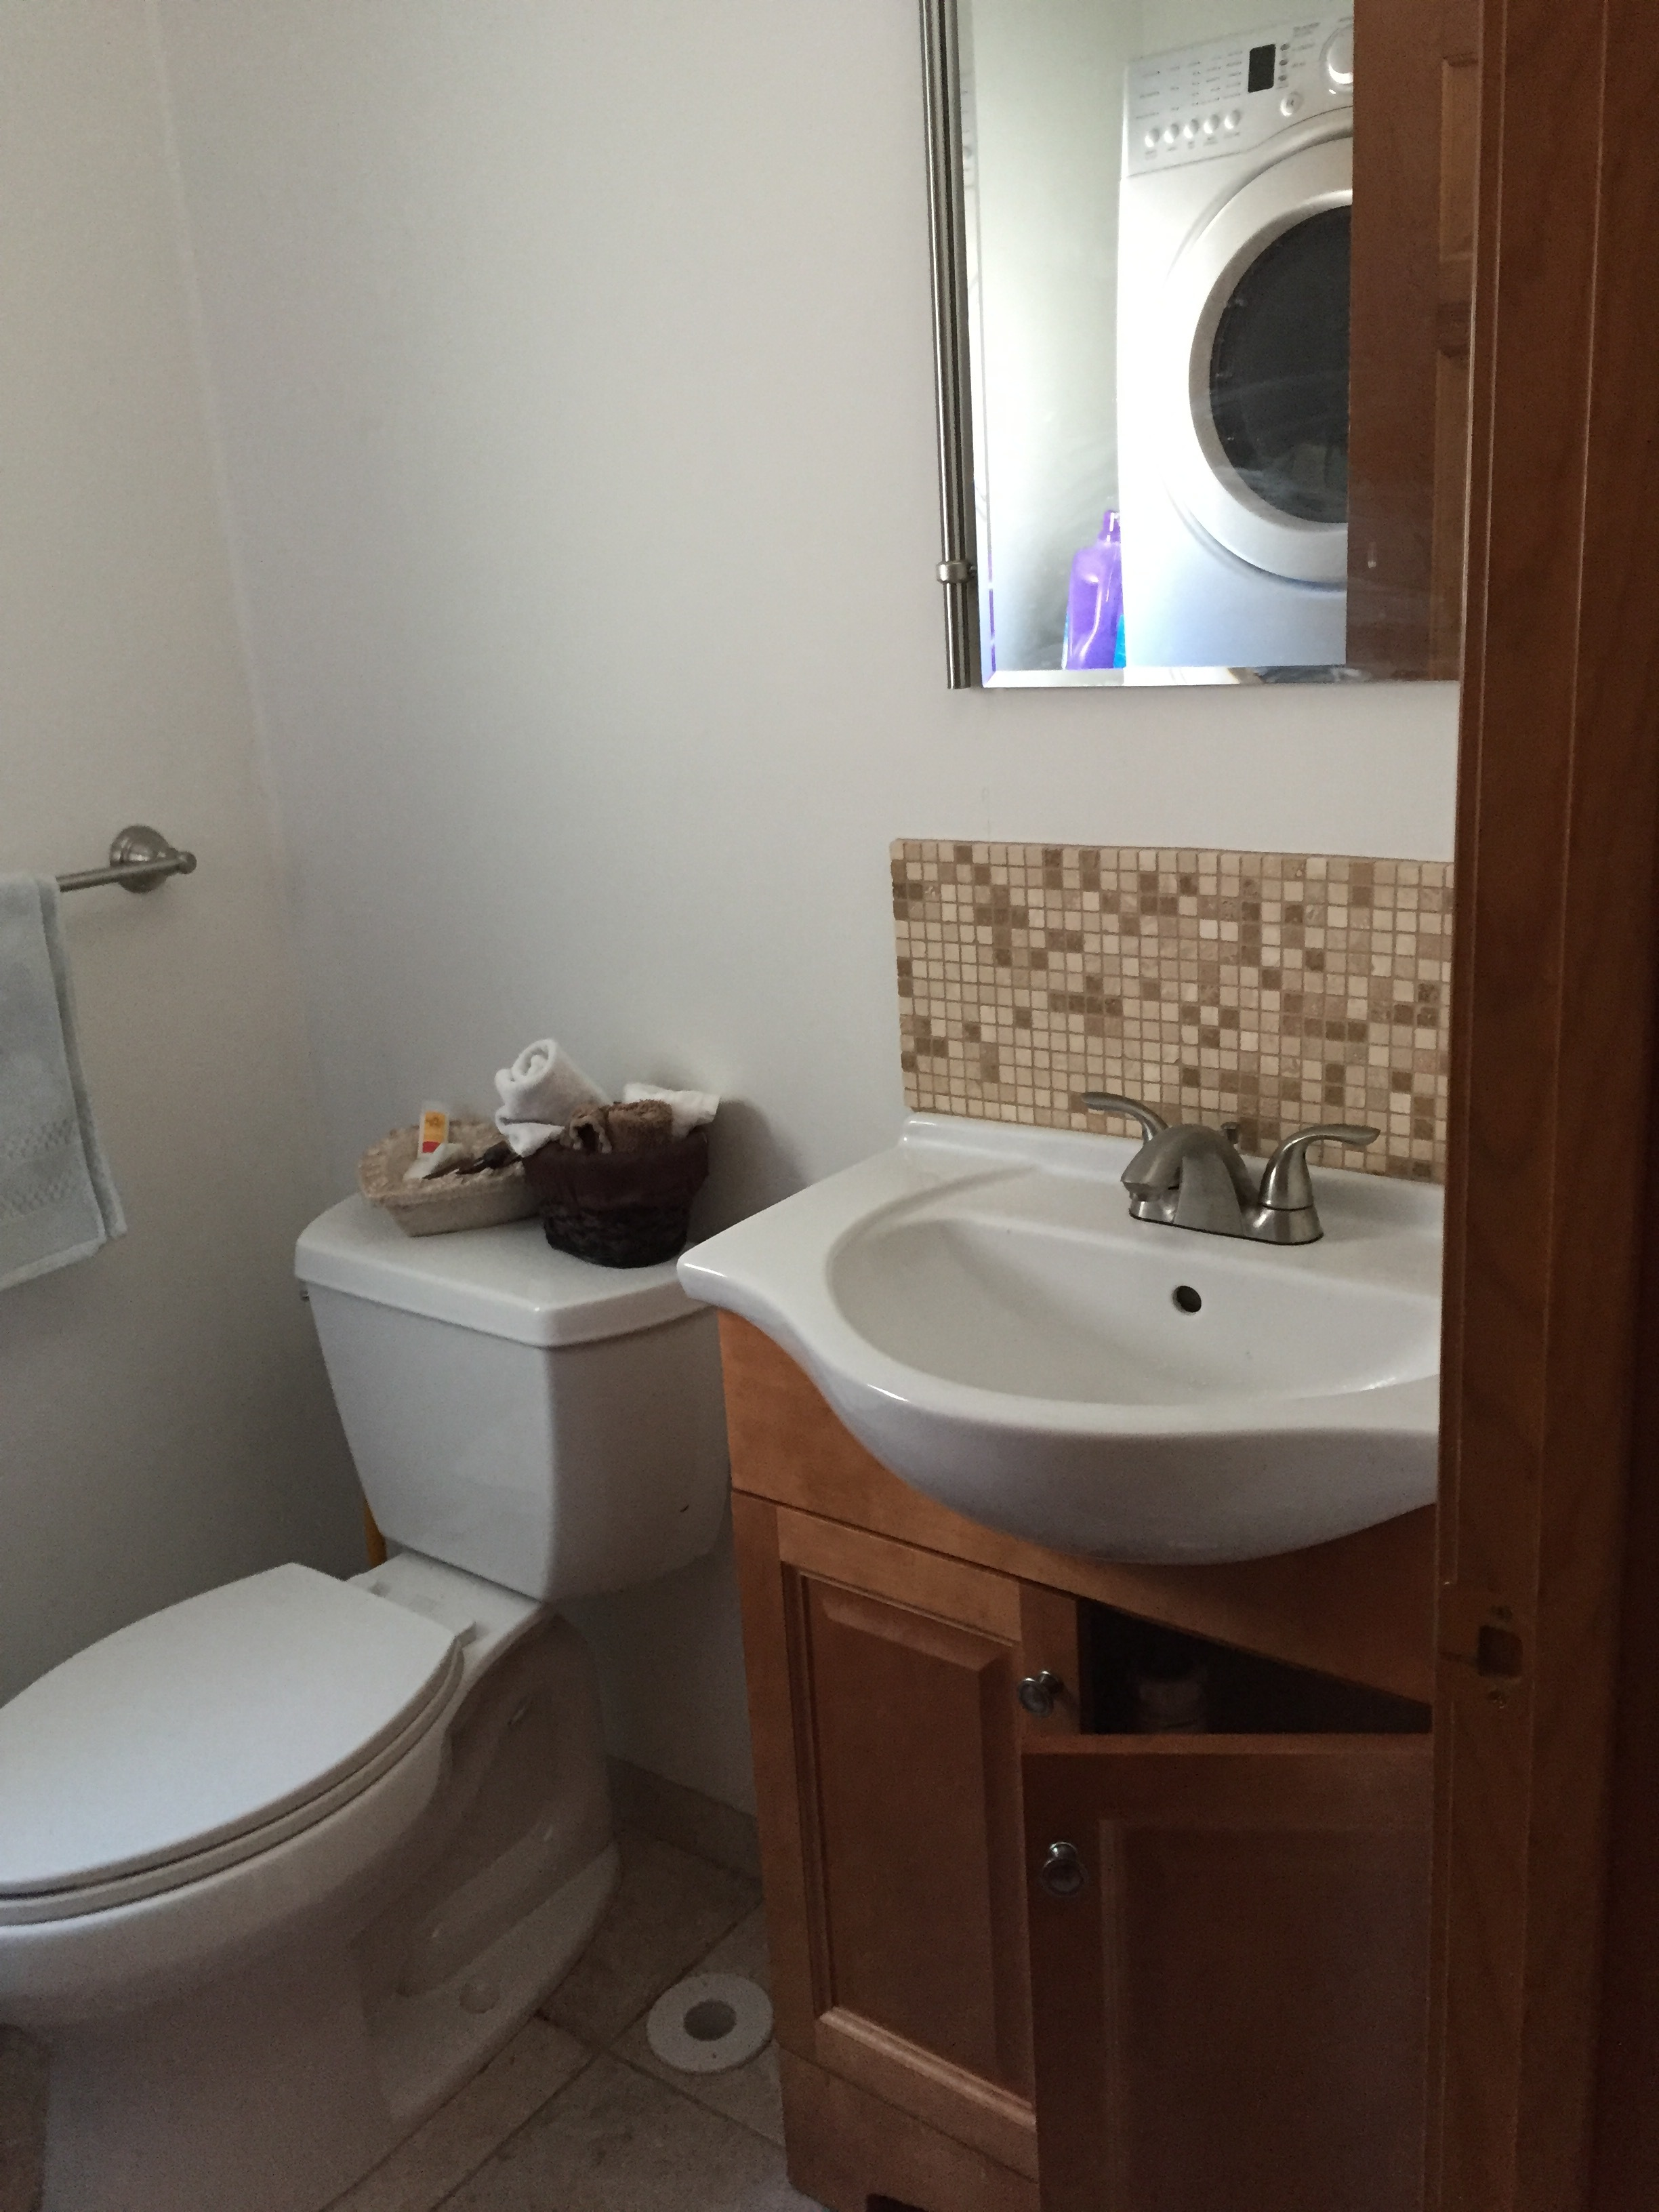 Before - Powder Room, showing washer/dryer behind the door